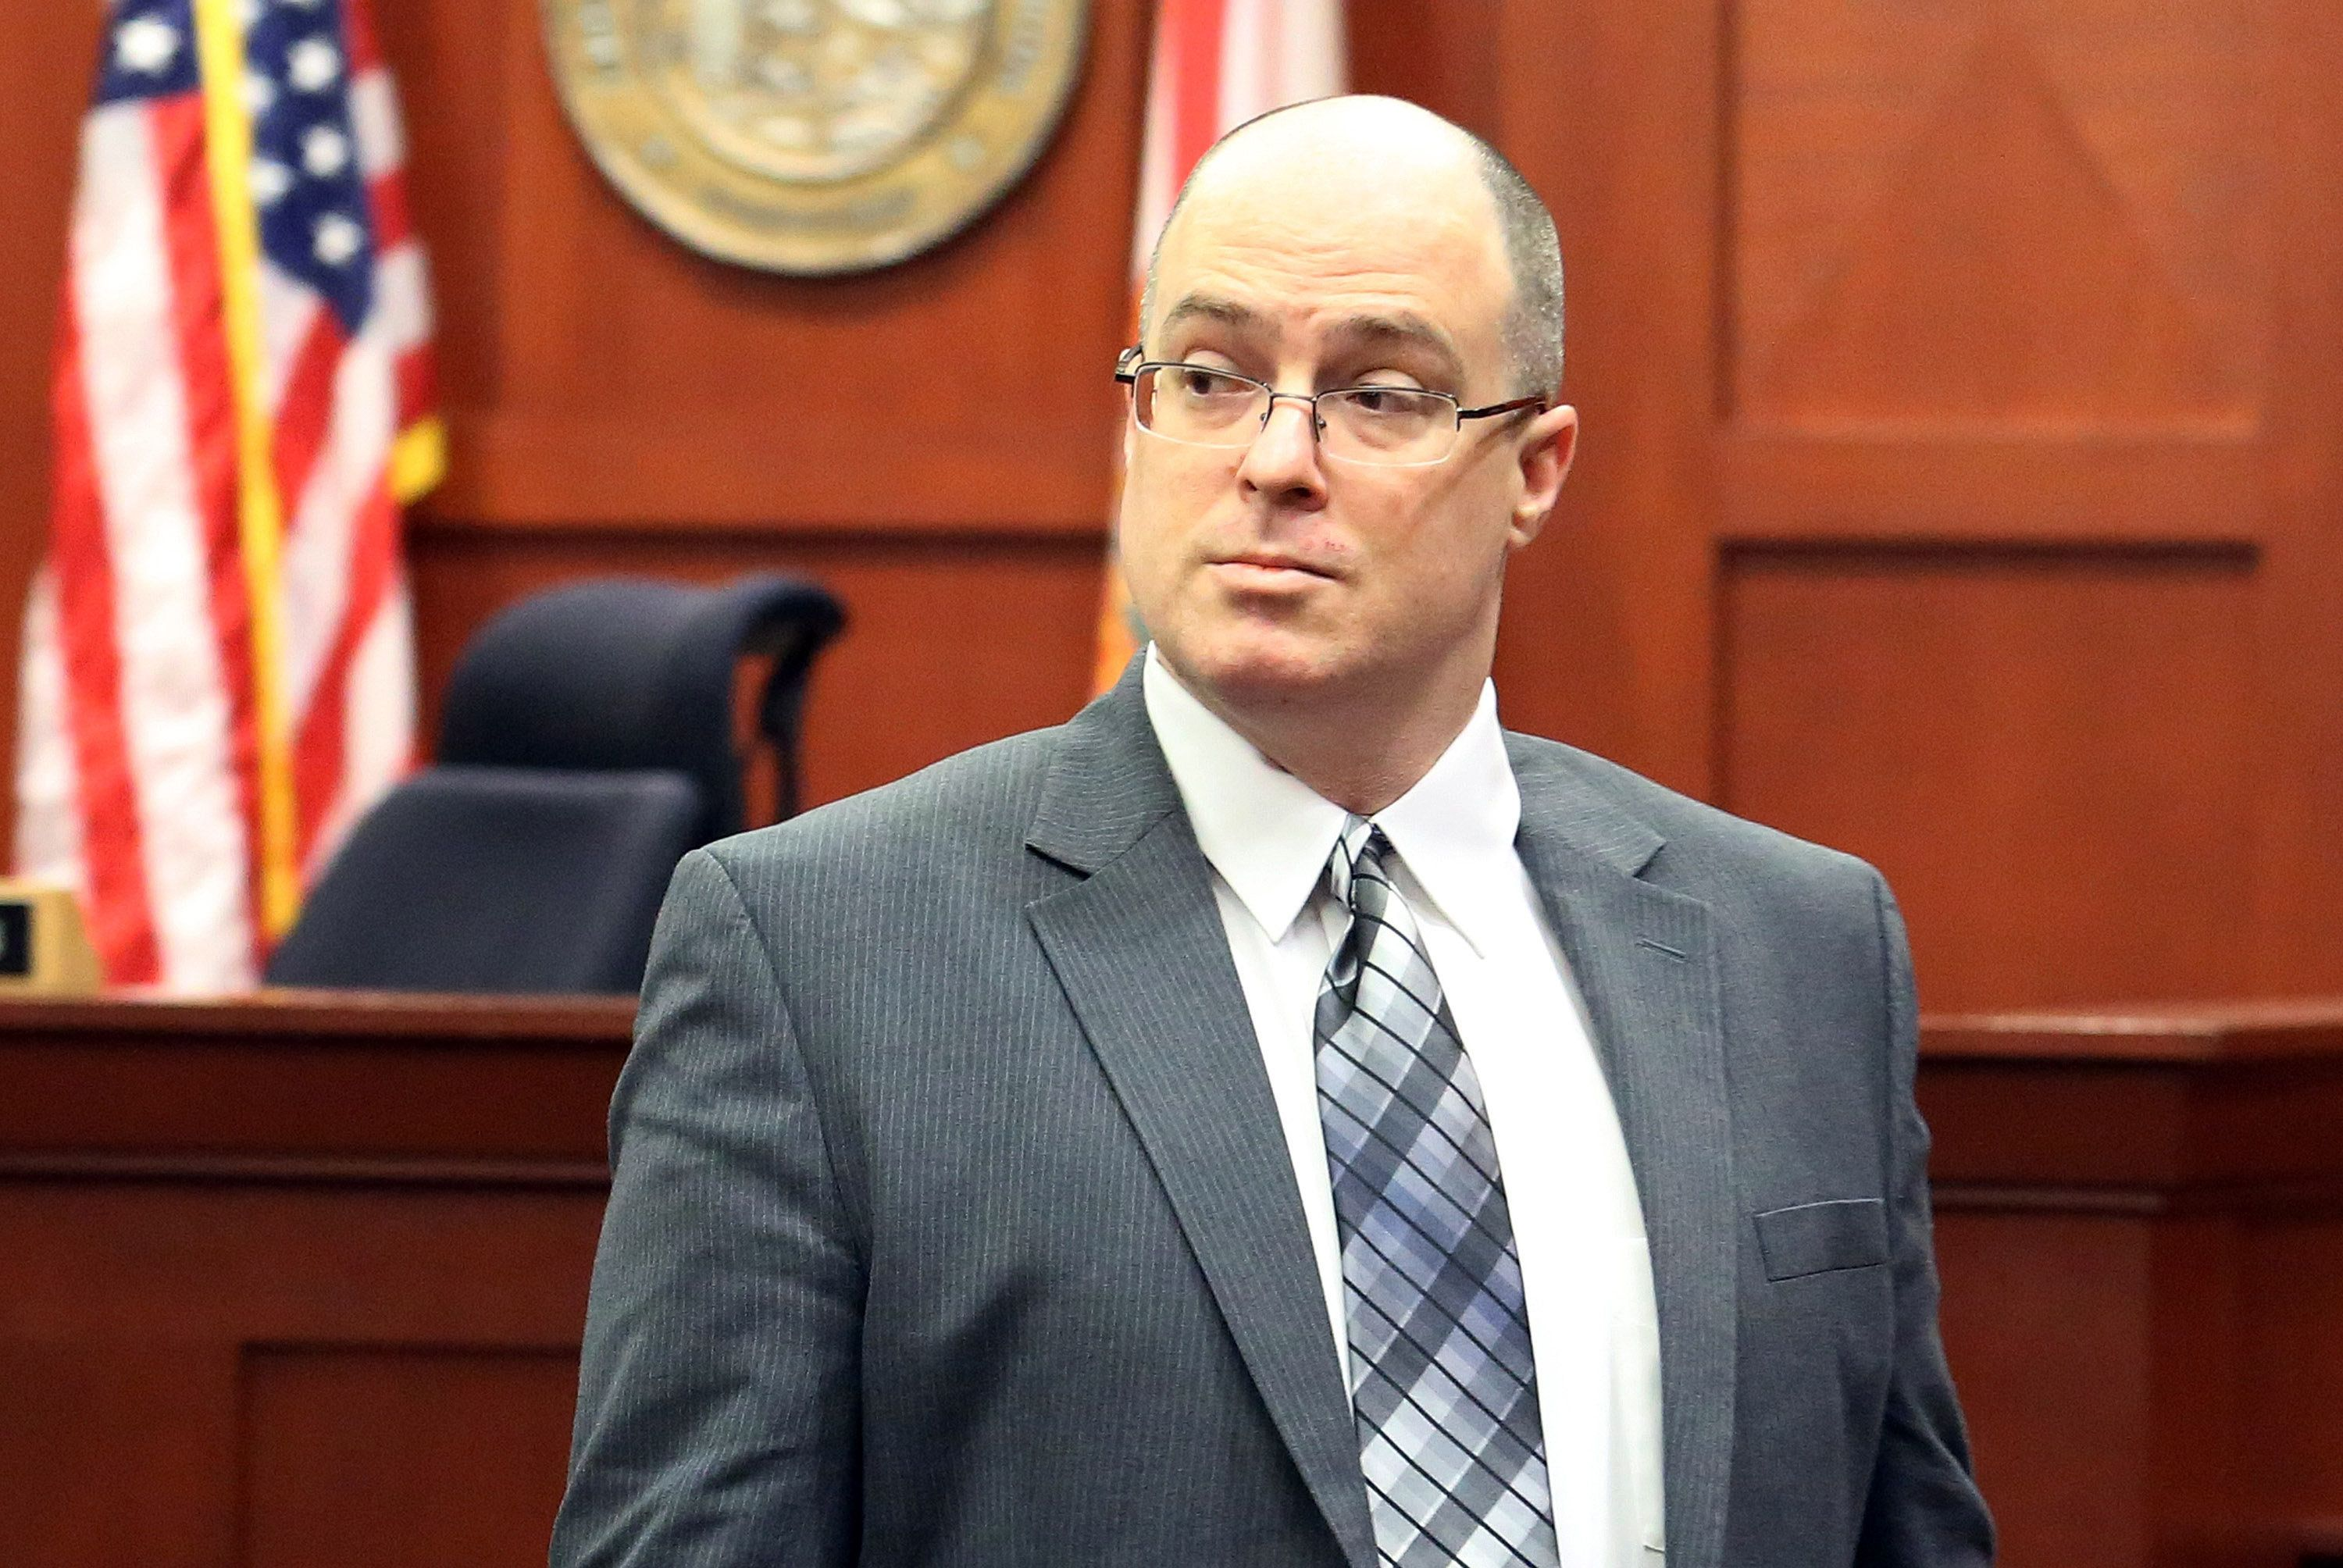 After 5 days of testimony, Matthew Apperson enters a Seminole County courtroom on Sept. 16, 2016 in Sanford, Fla. Closing arguments began today in the trial of Apperson, who says he shot at George Zimmerman in self defense. (Red Huber/Orlando Sentinel/TNS via Getty Images)